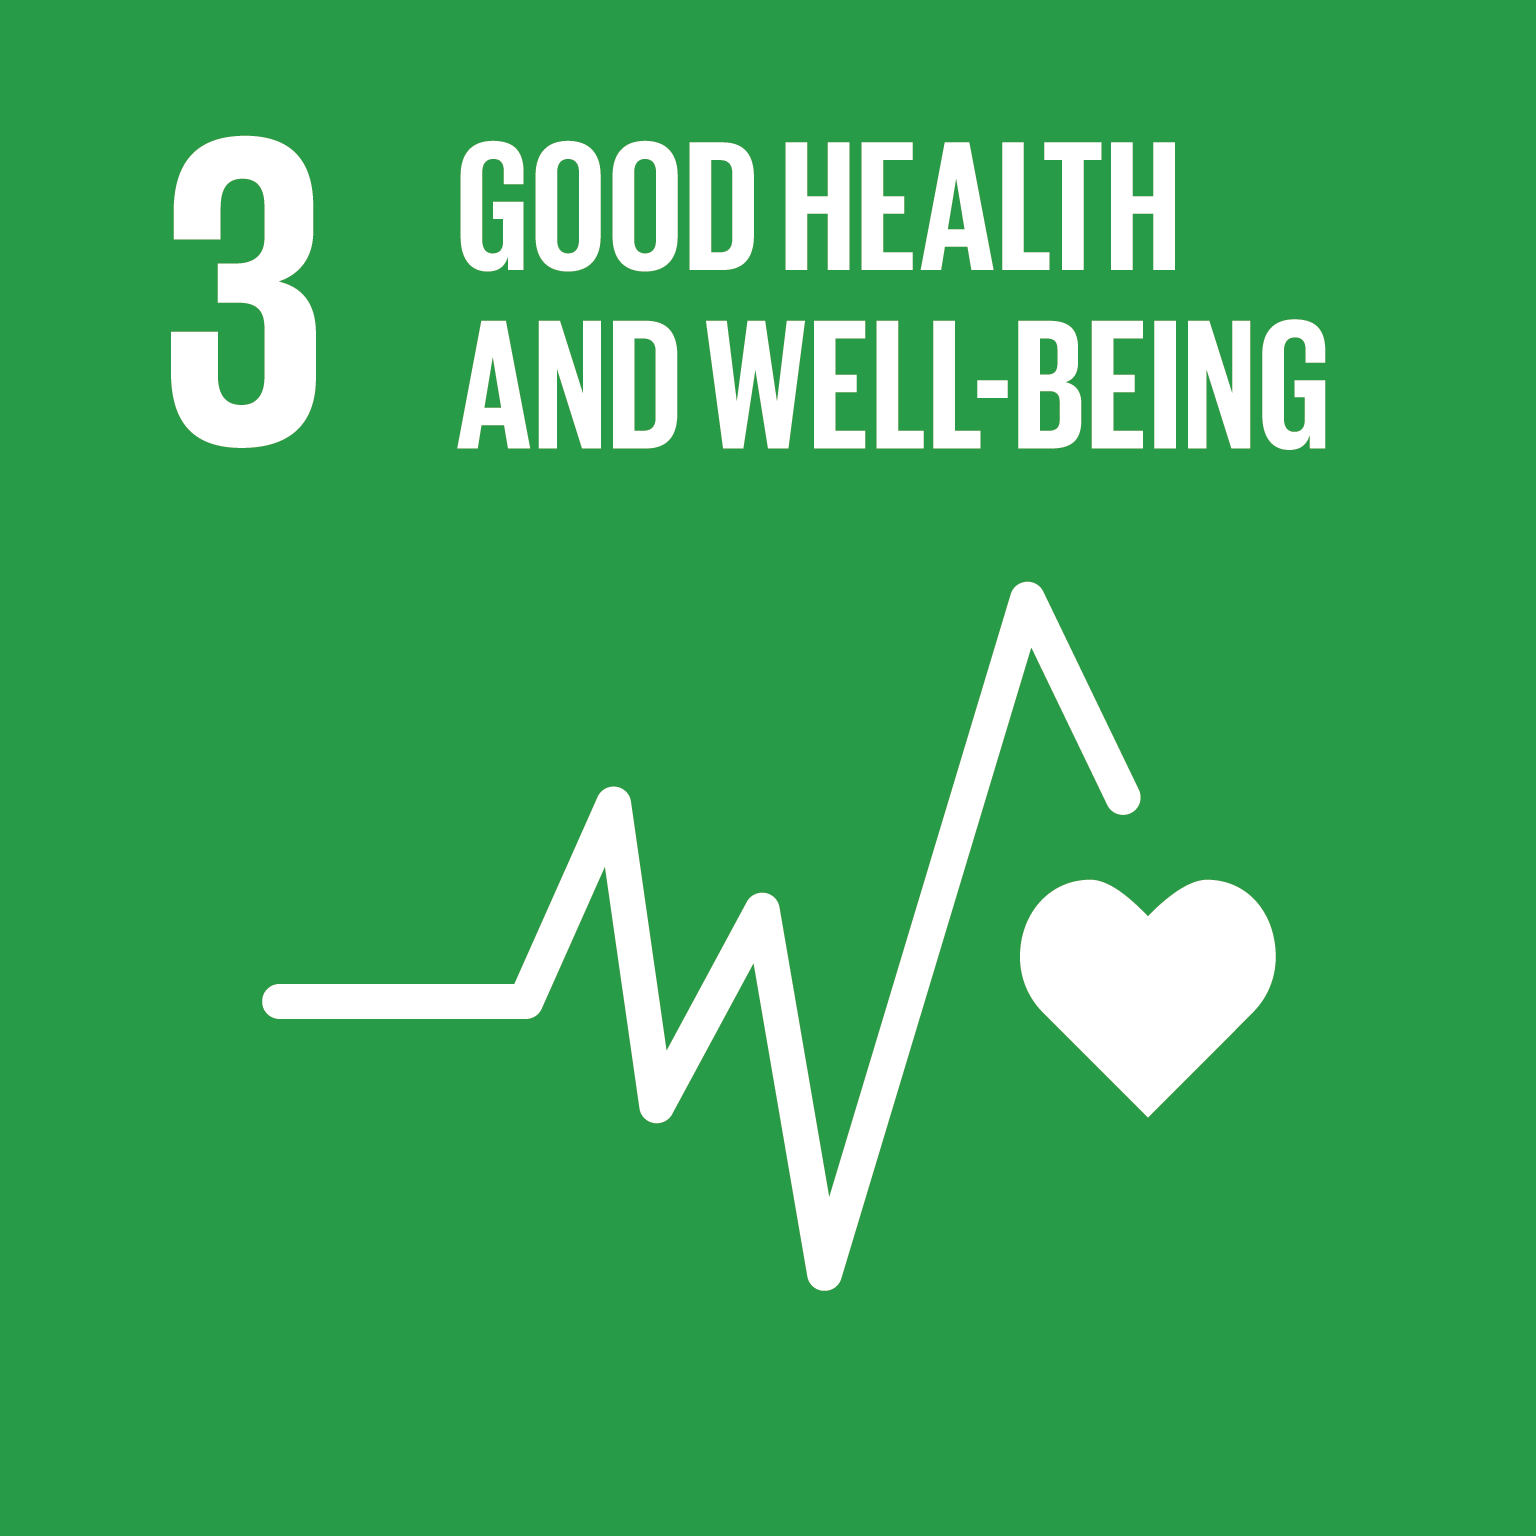 SDG03: Good Health and Well-Being